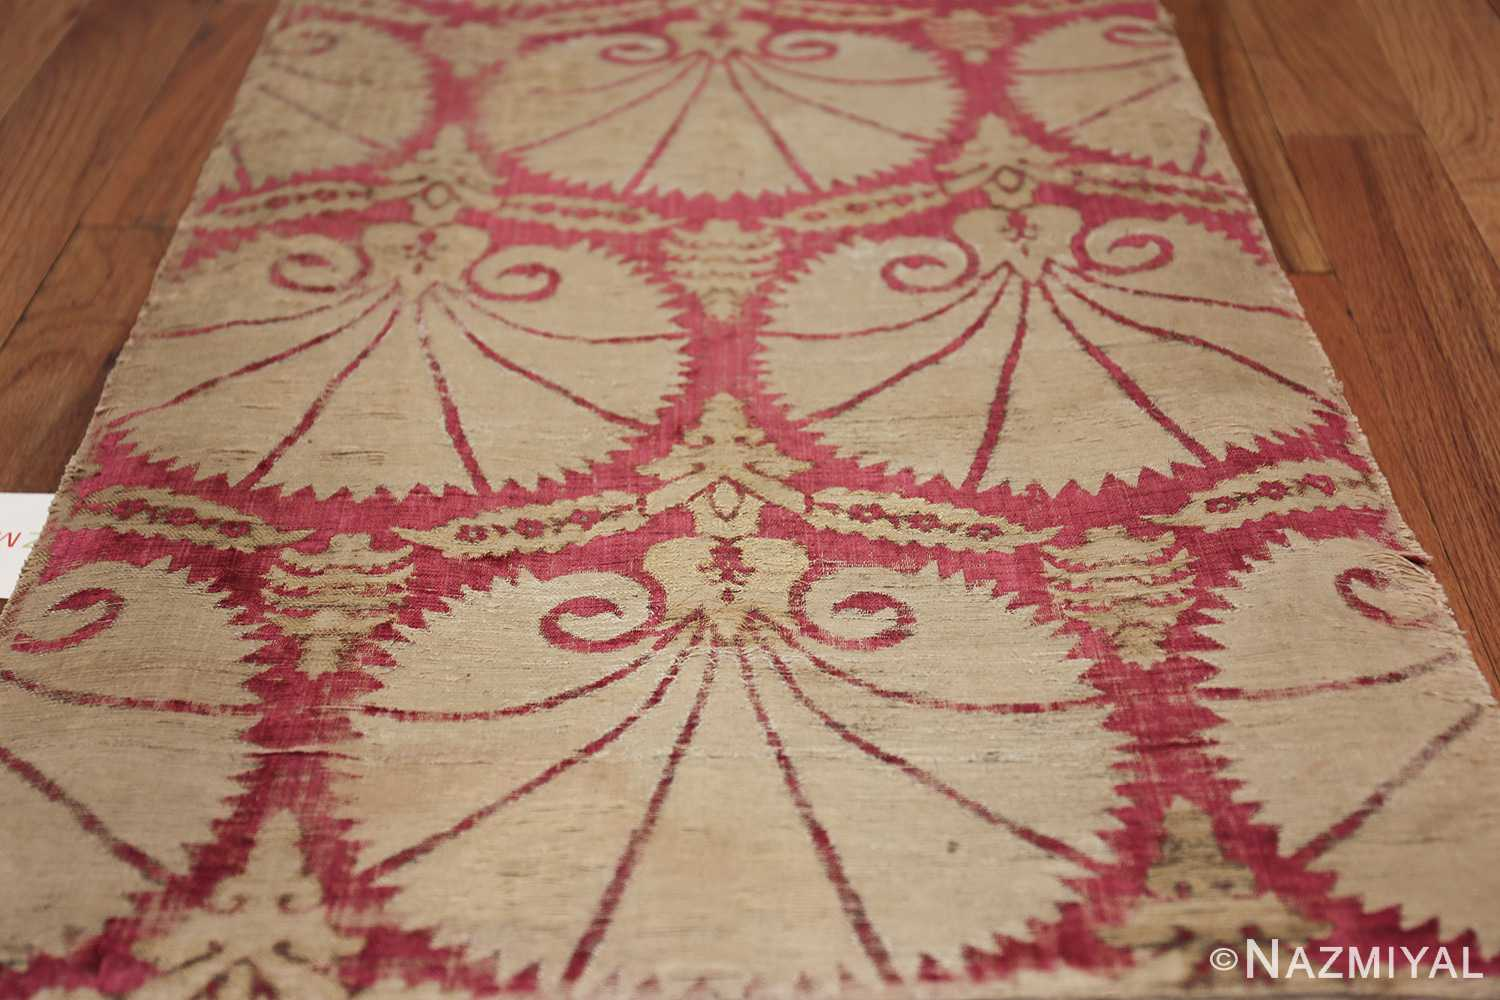 17th century antique turkish ottoman textile 48640 field Nazmiyal